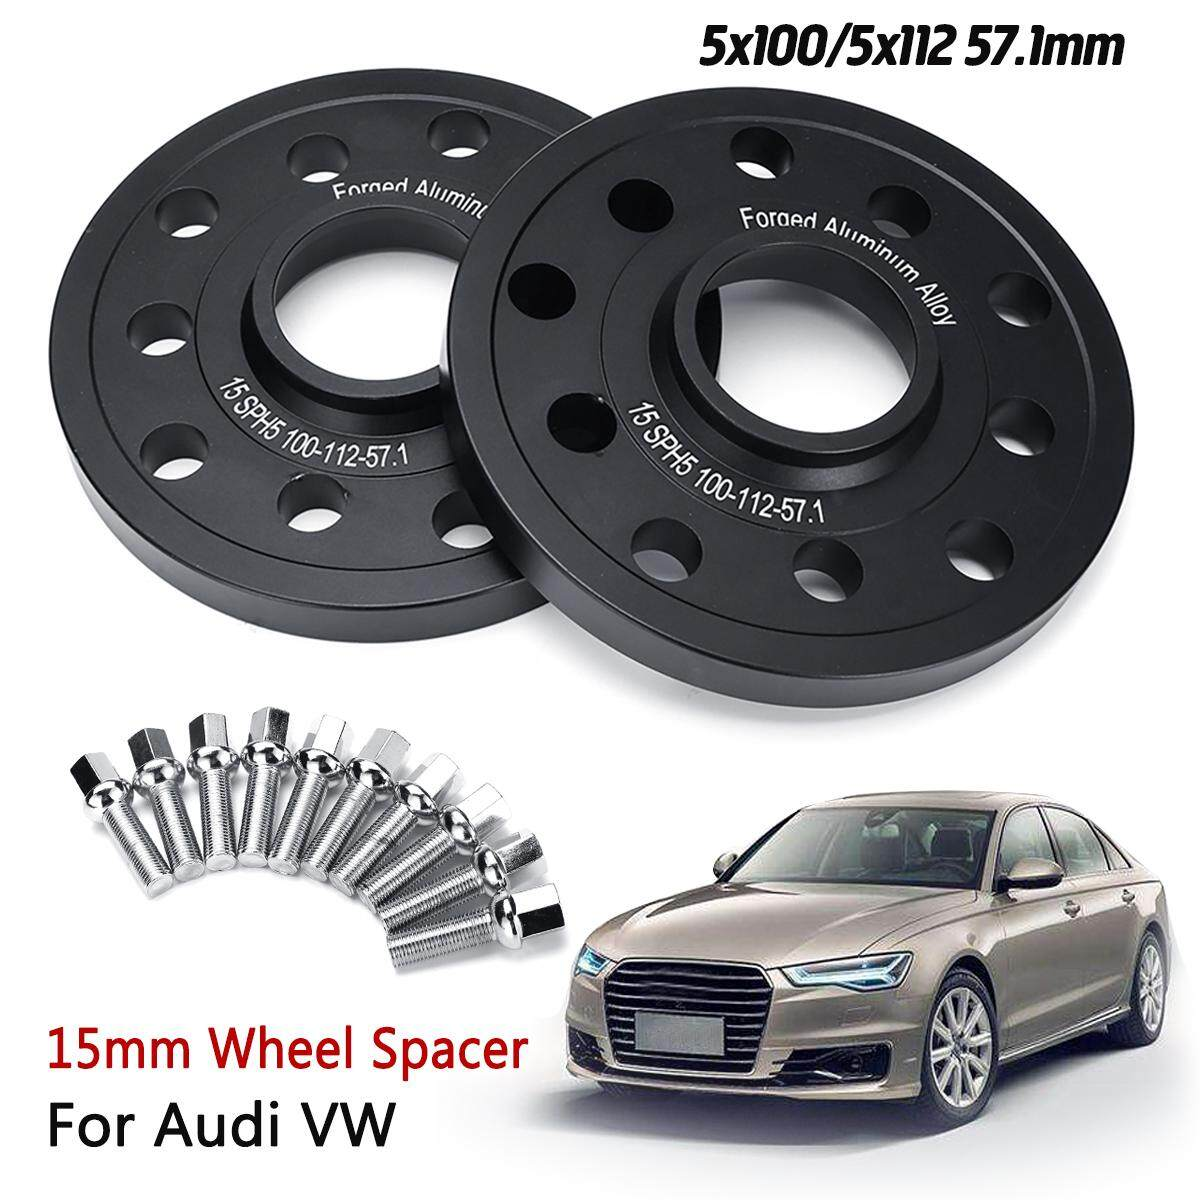 Alloy Wheel Spacers 5x100/112 57.1 15mm + Extended Bolts For Vw Audi Seat Skoda 223165268377.